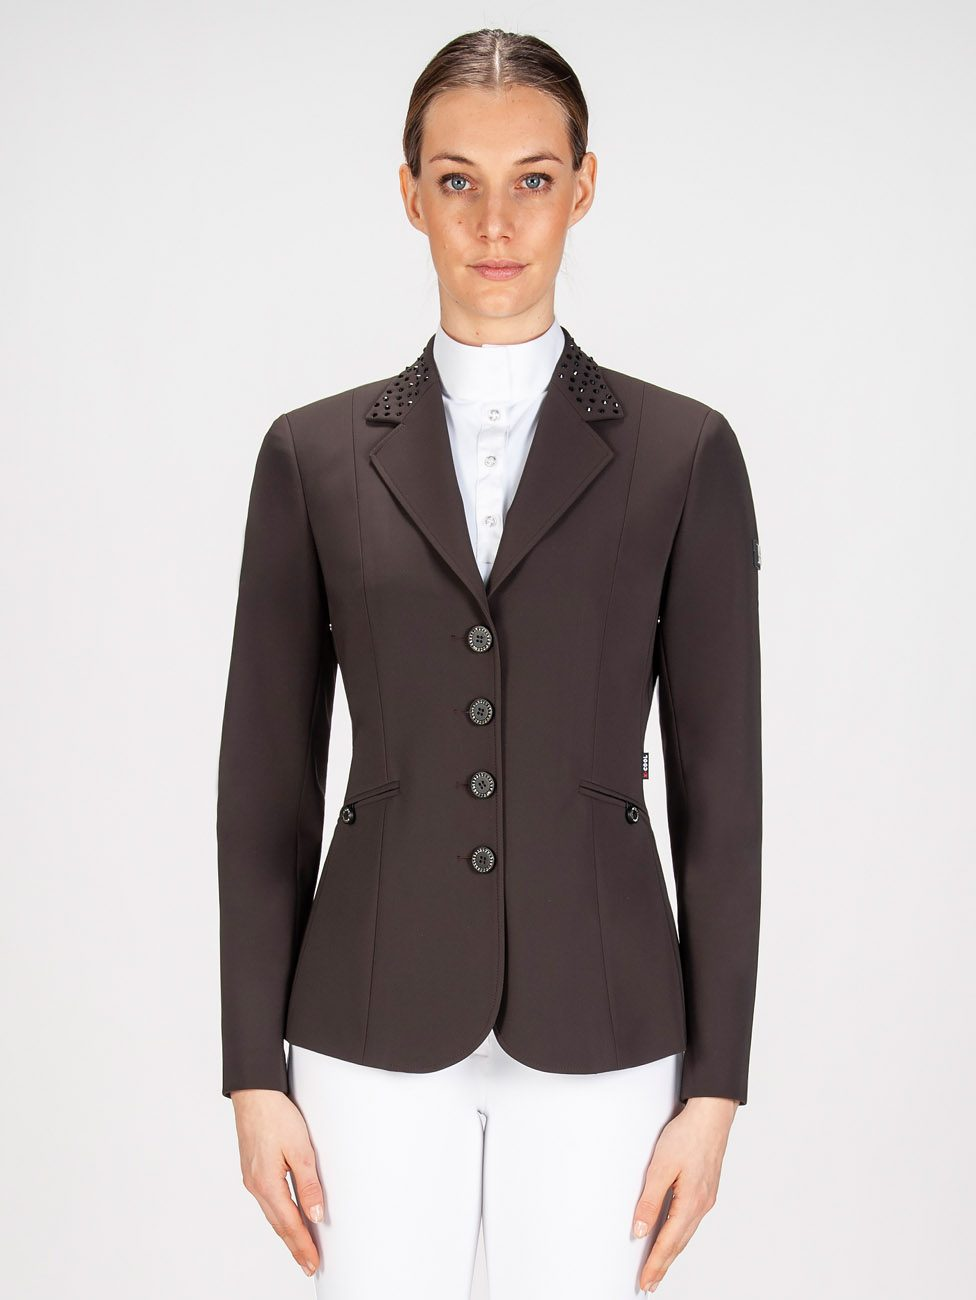 GIOIA - Women's Show Coat w/ Crystals 4